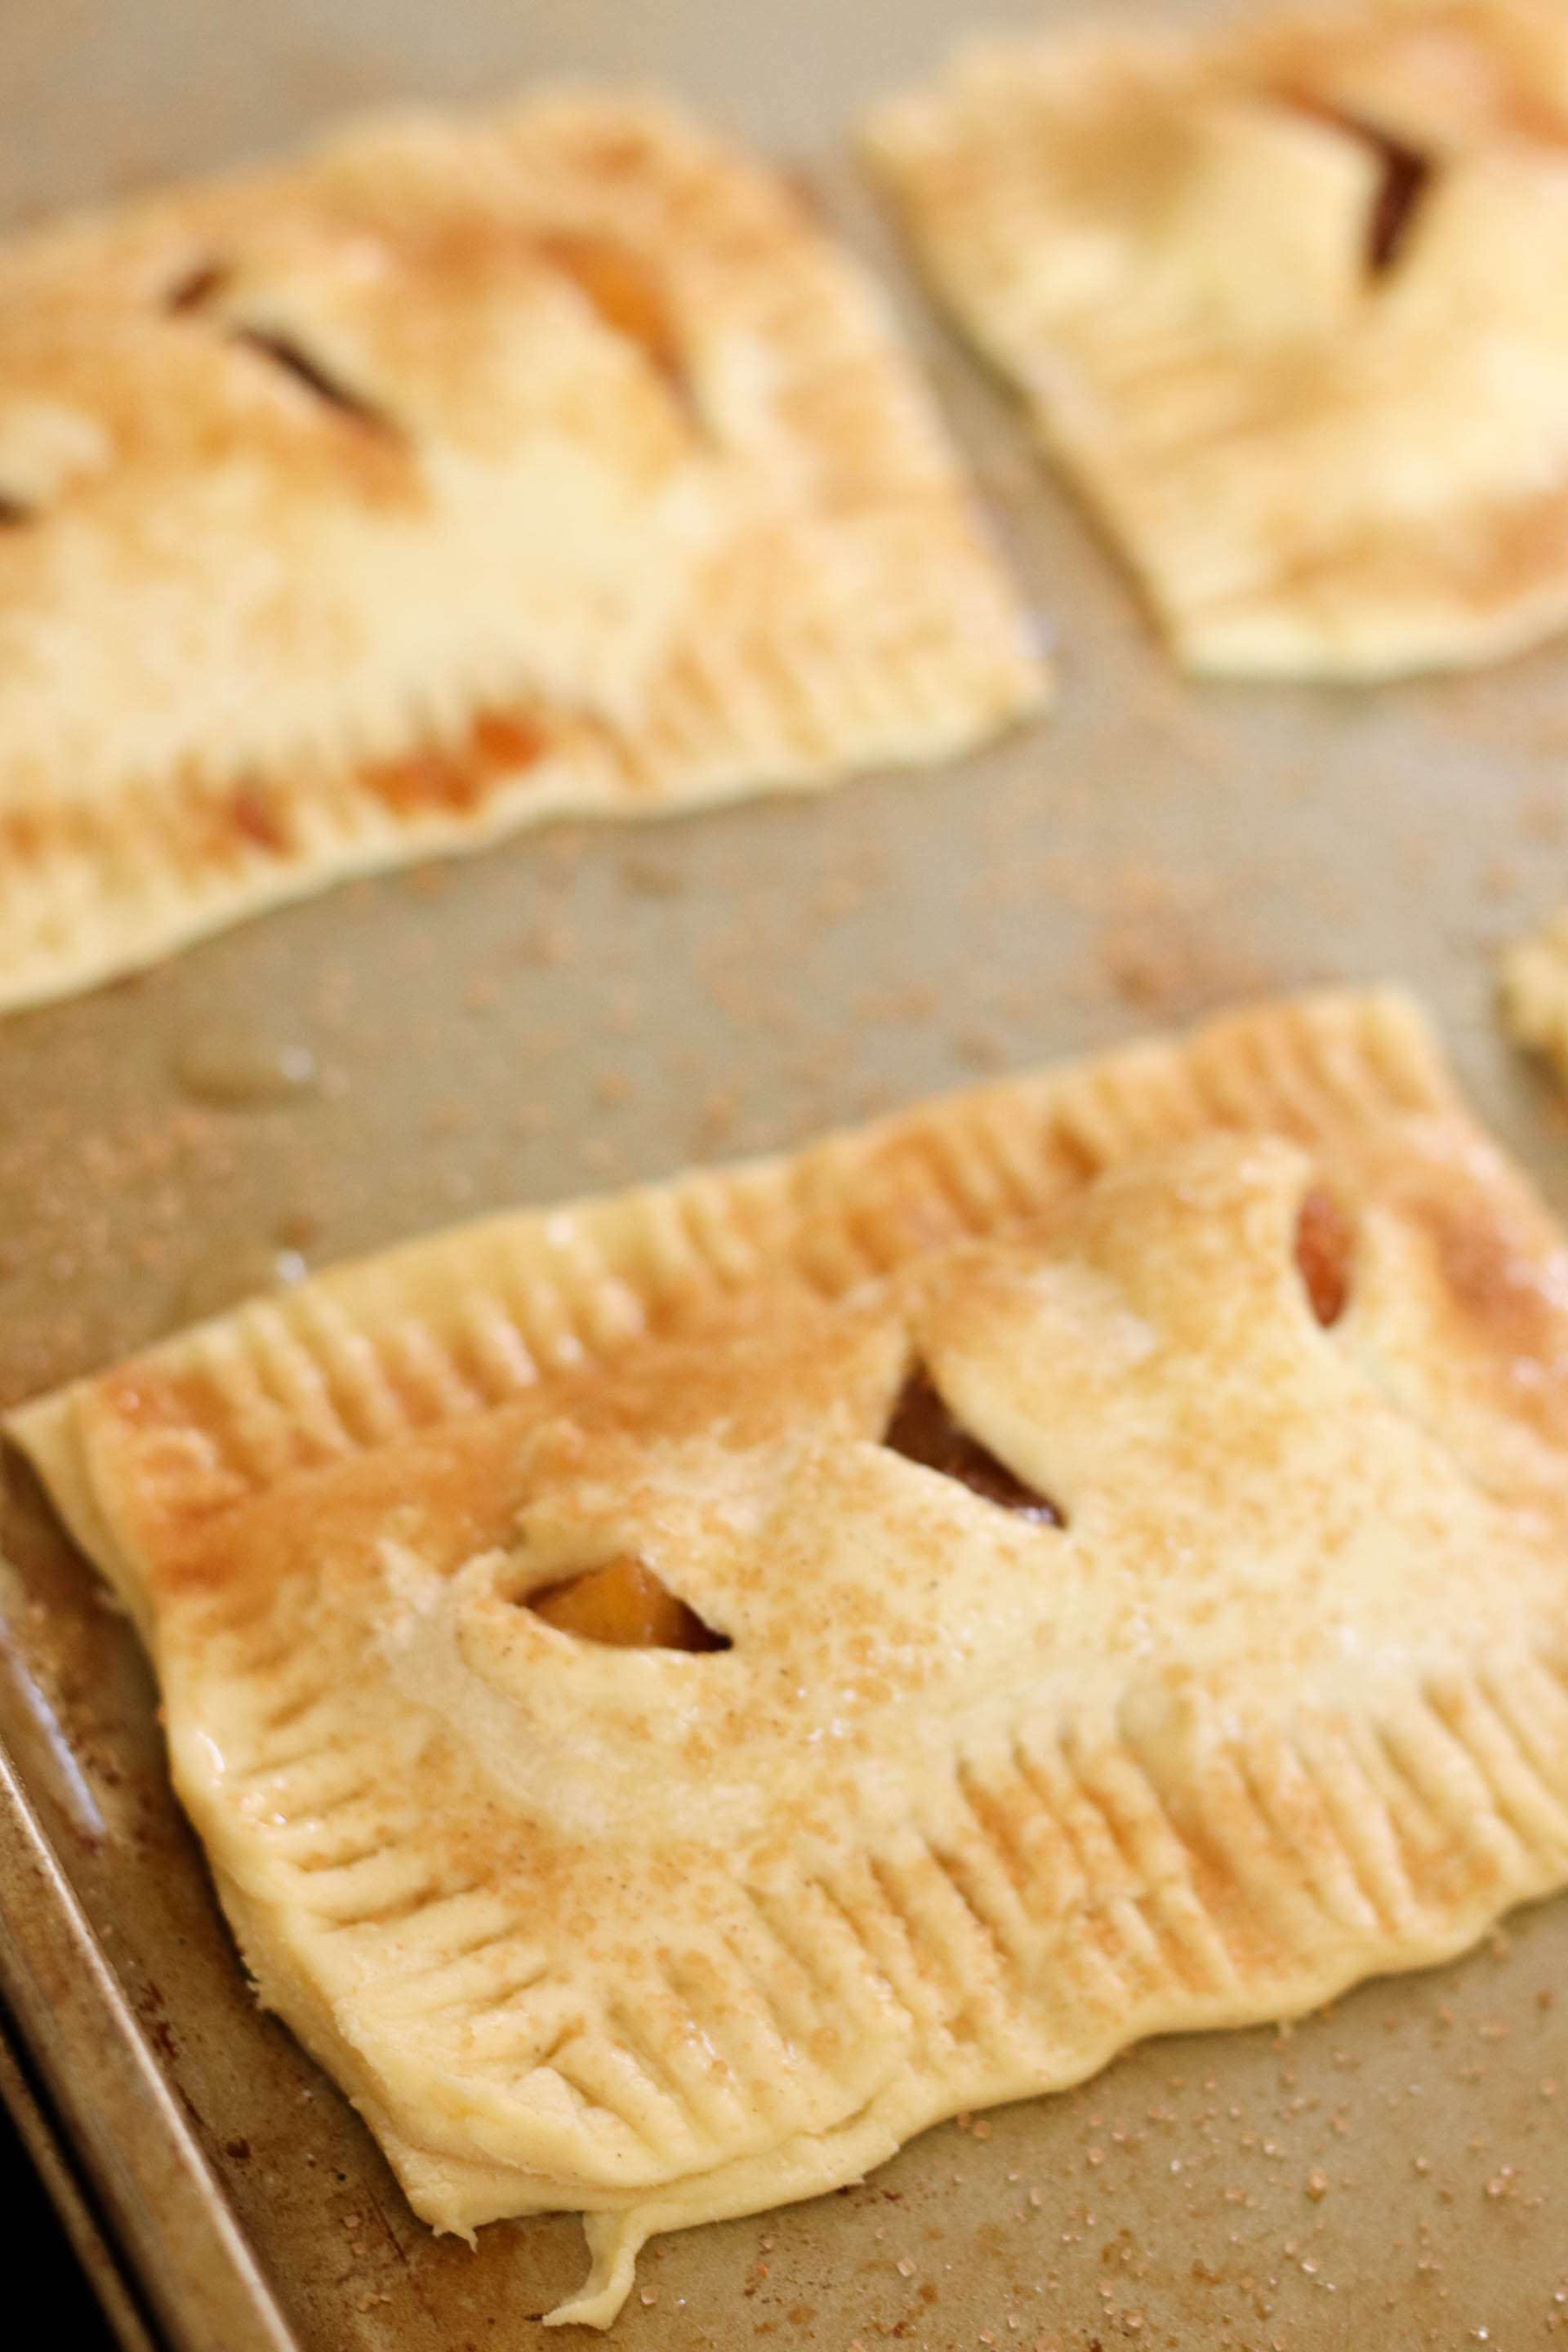 Unbaked Peach Hand Pies on baking sheet